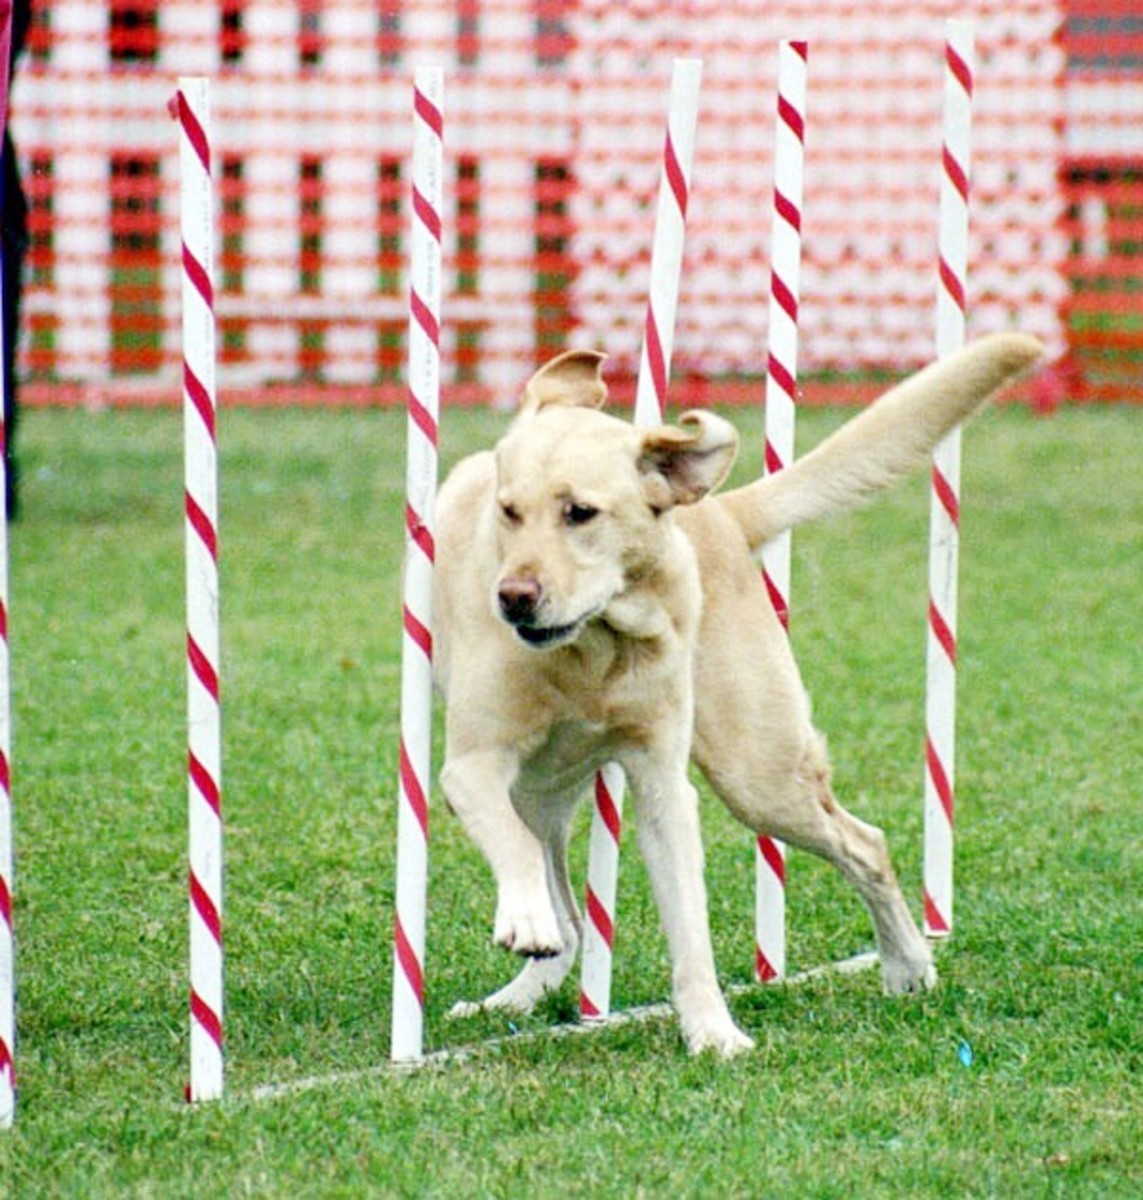 A yellow Lab going through the weave poles during an agility event